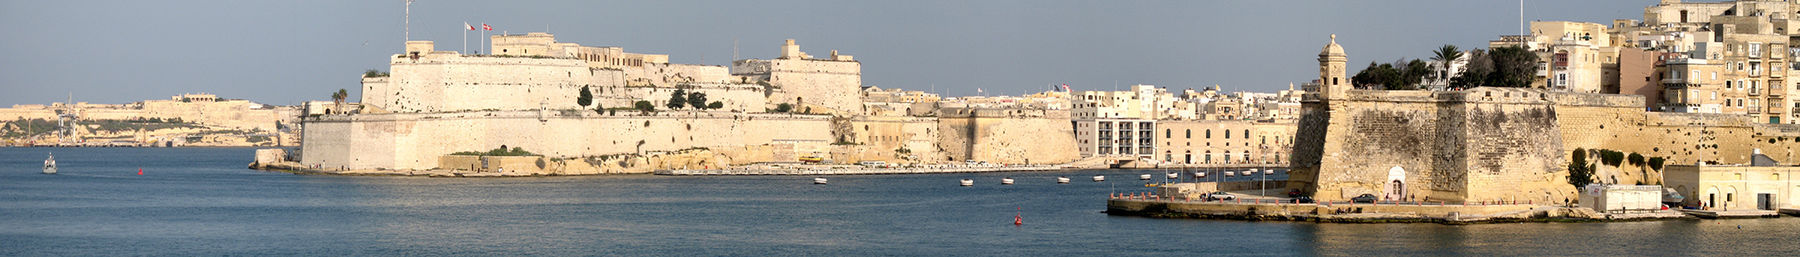 Malta, Senglea and Birgu (Vittoriosa), seen from Valletta